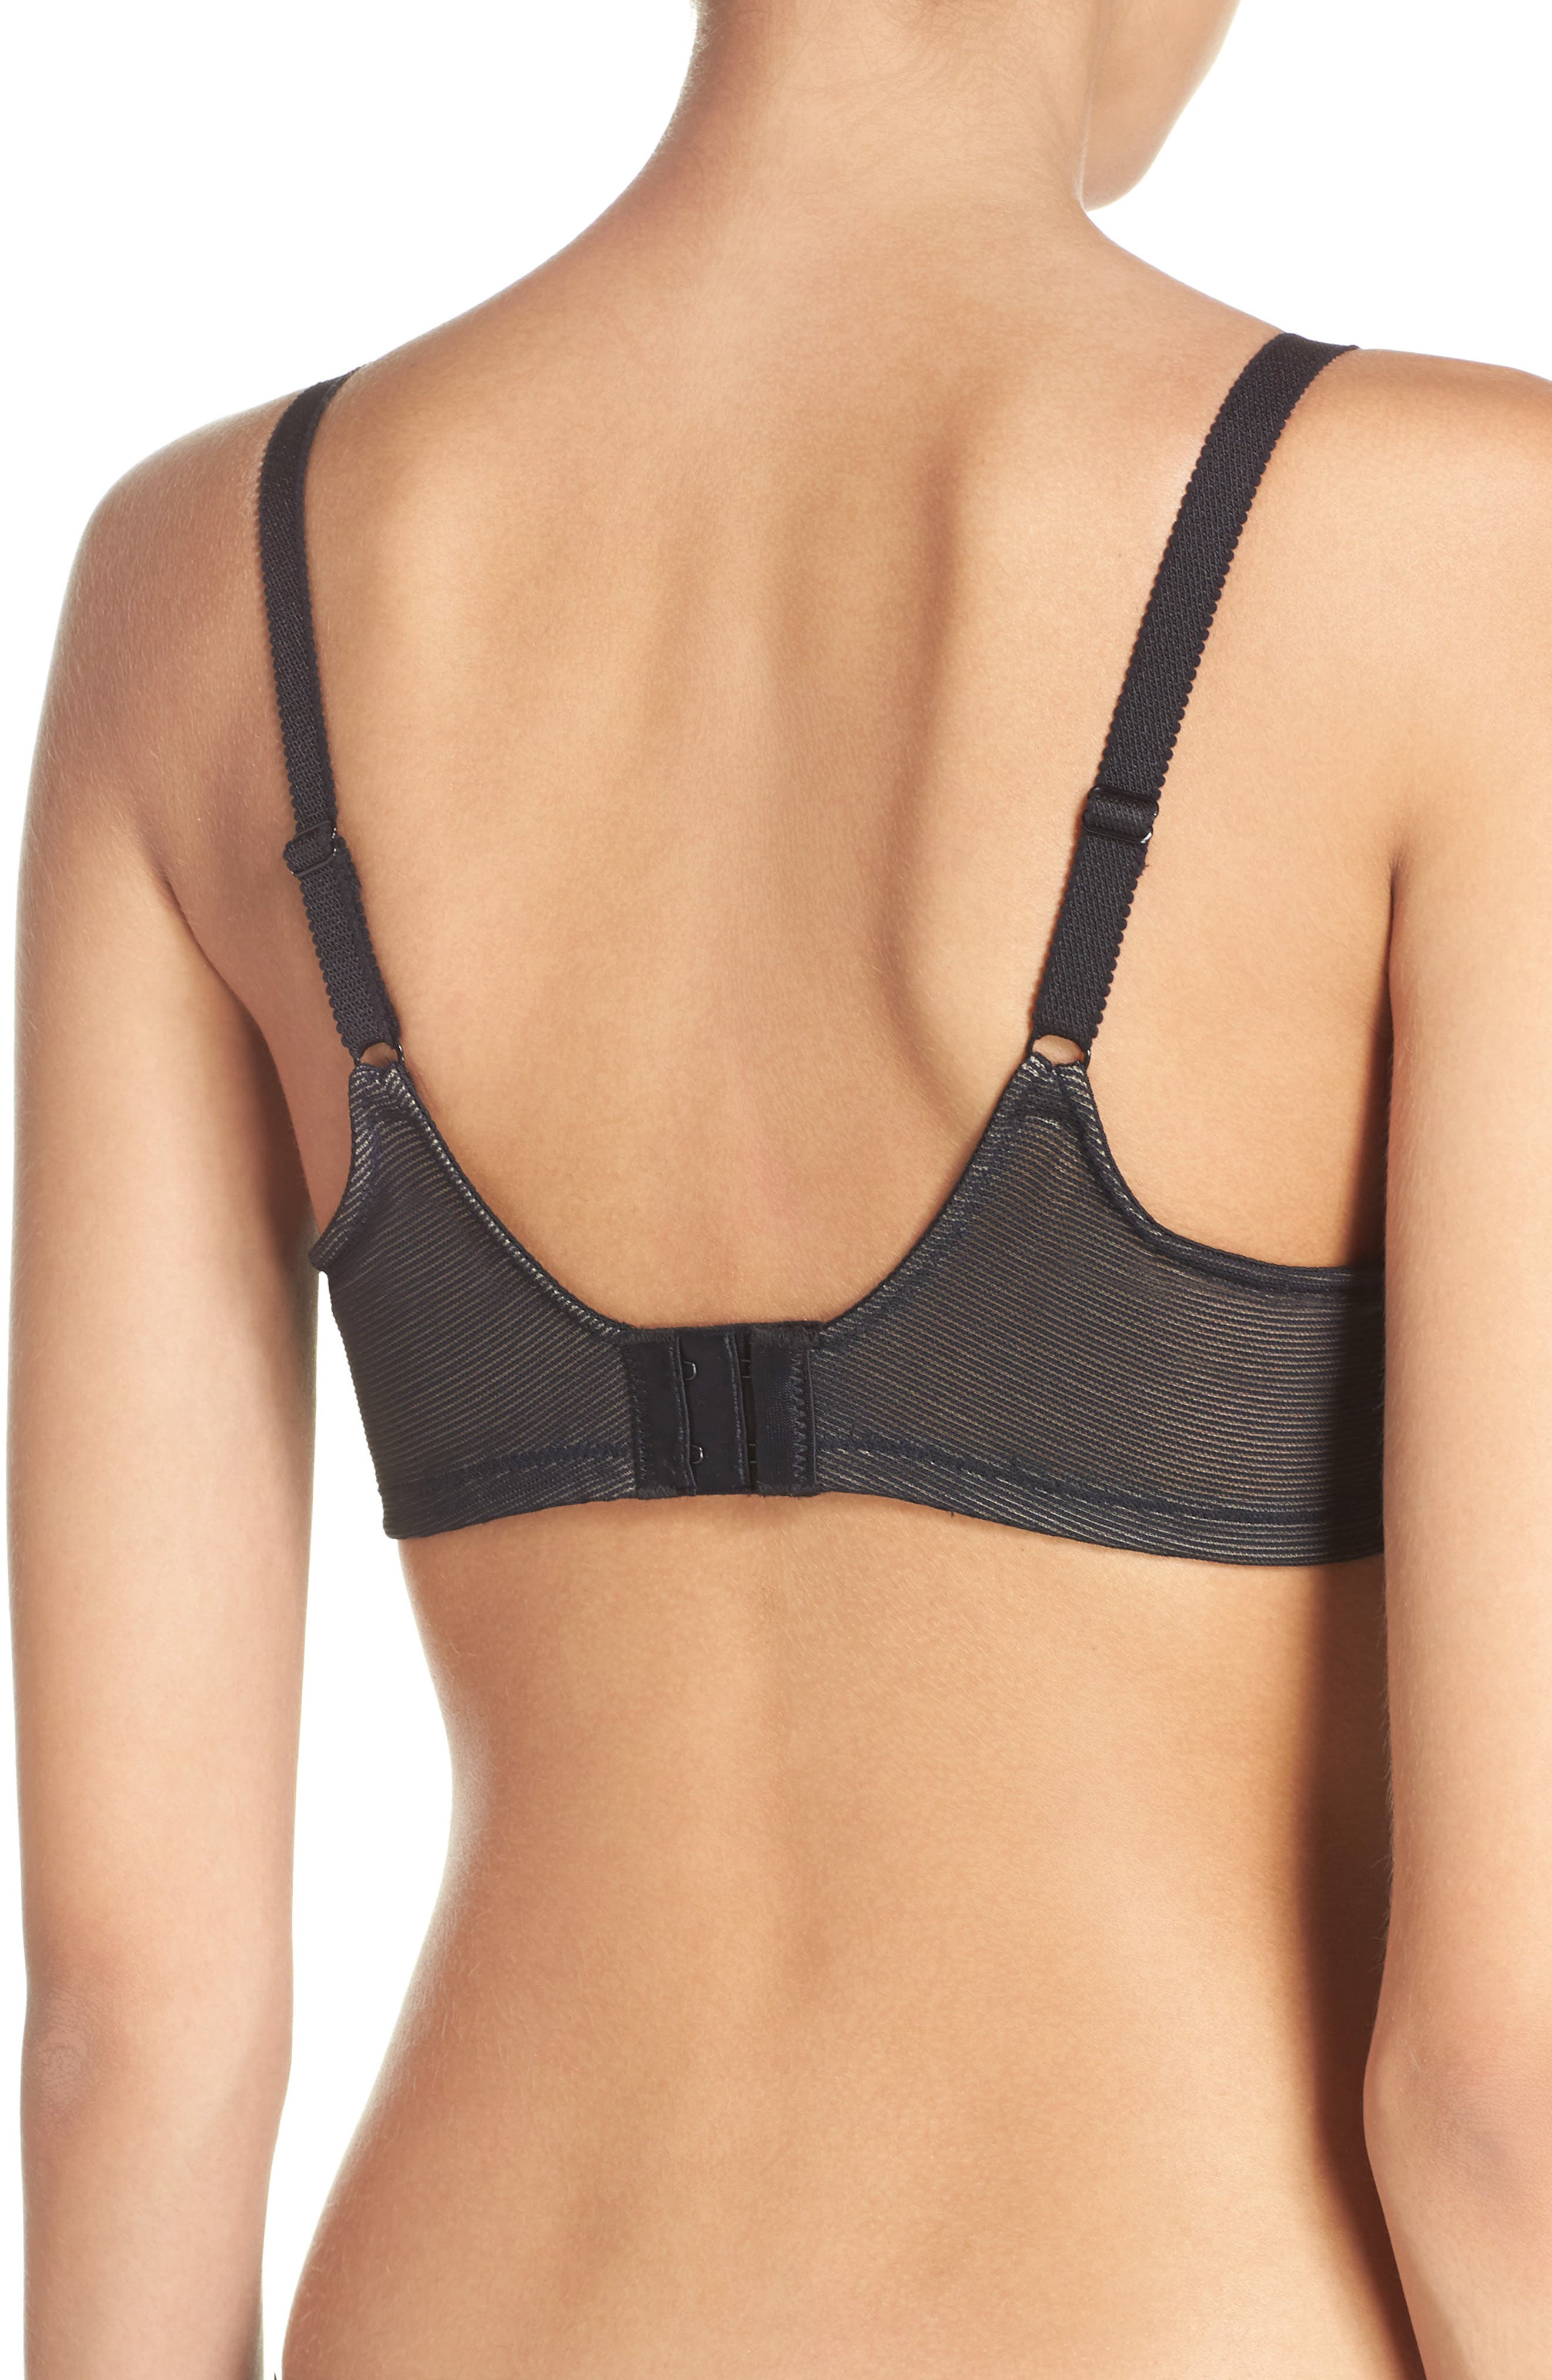 Alternate Image 2  - Wacoal Visual Effects Wireless Minimizer Bra